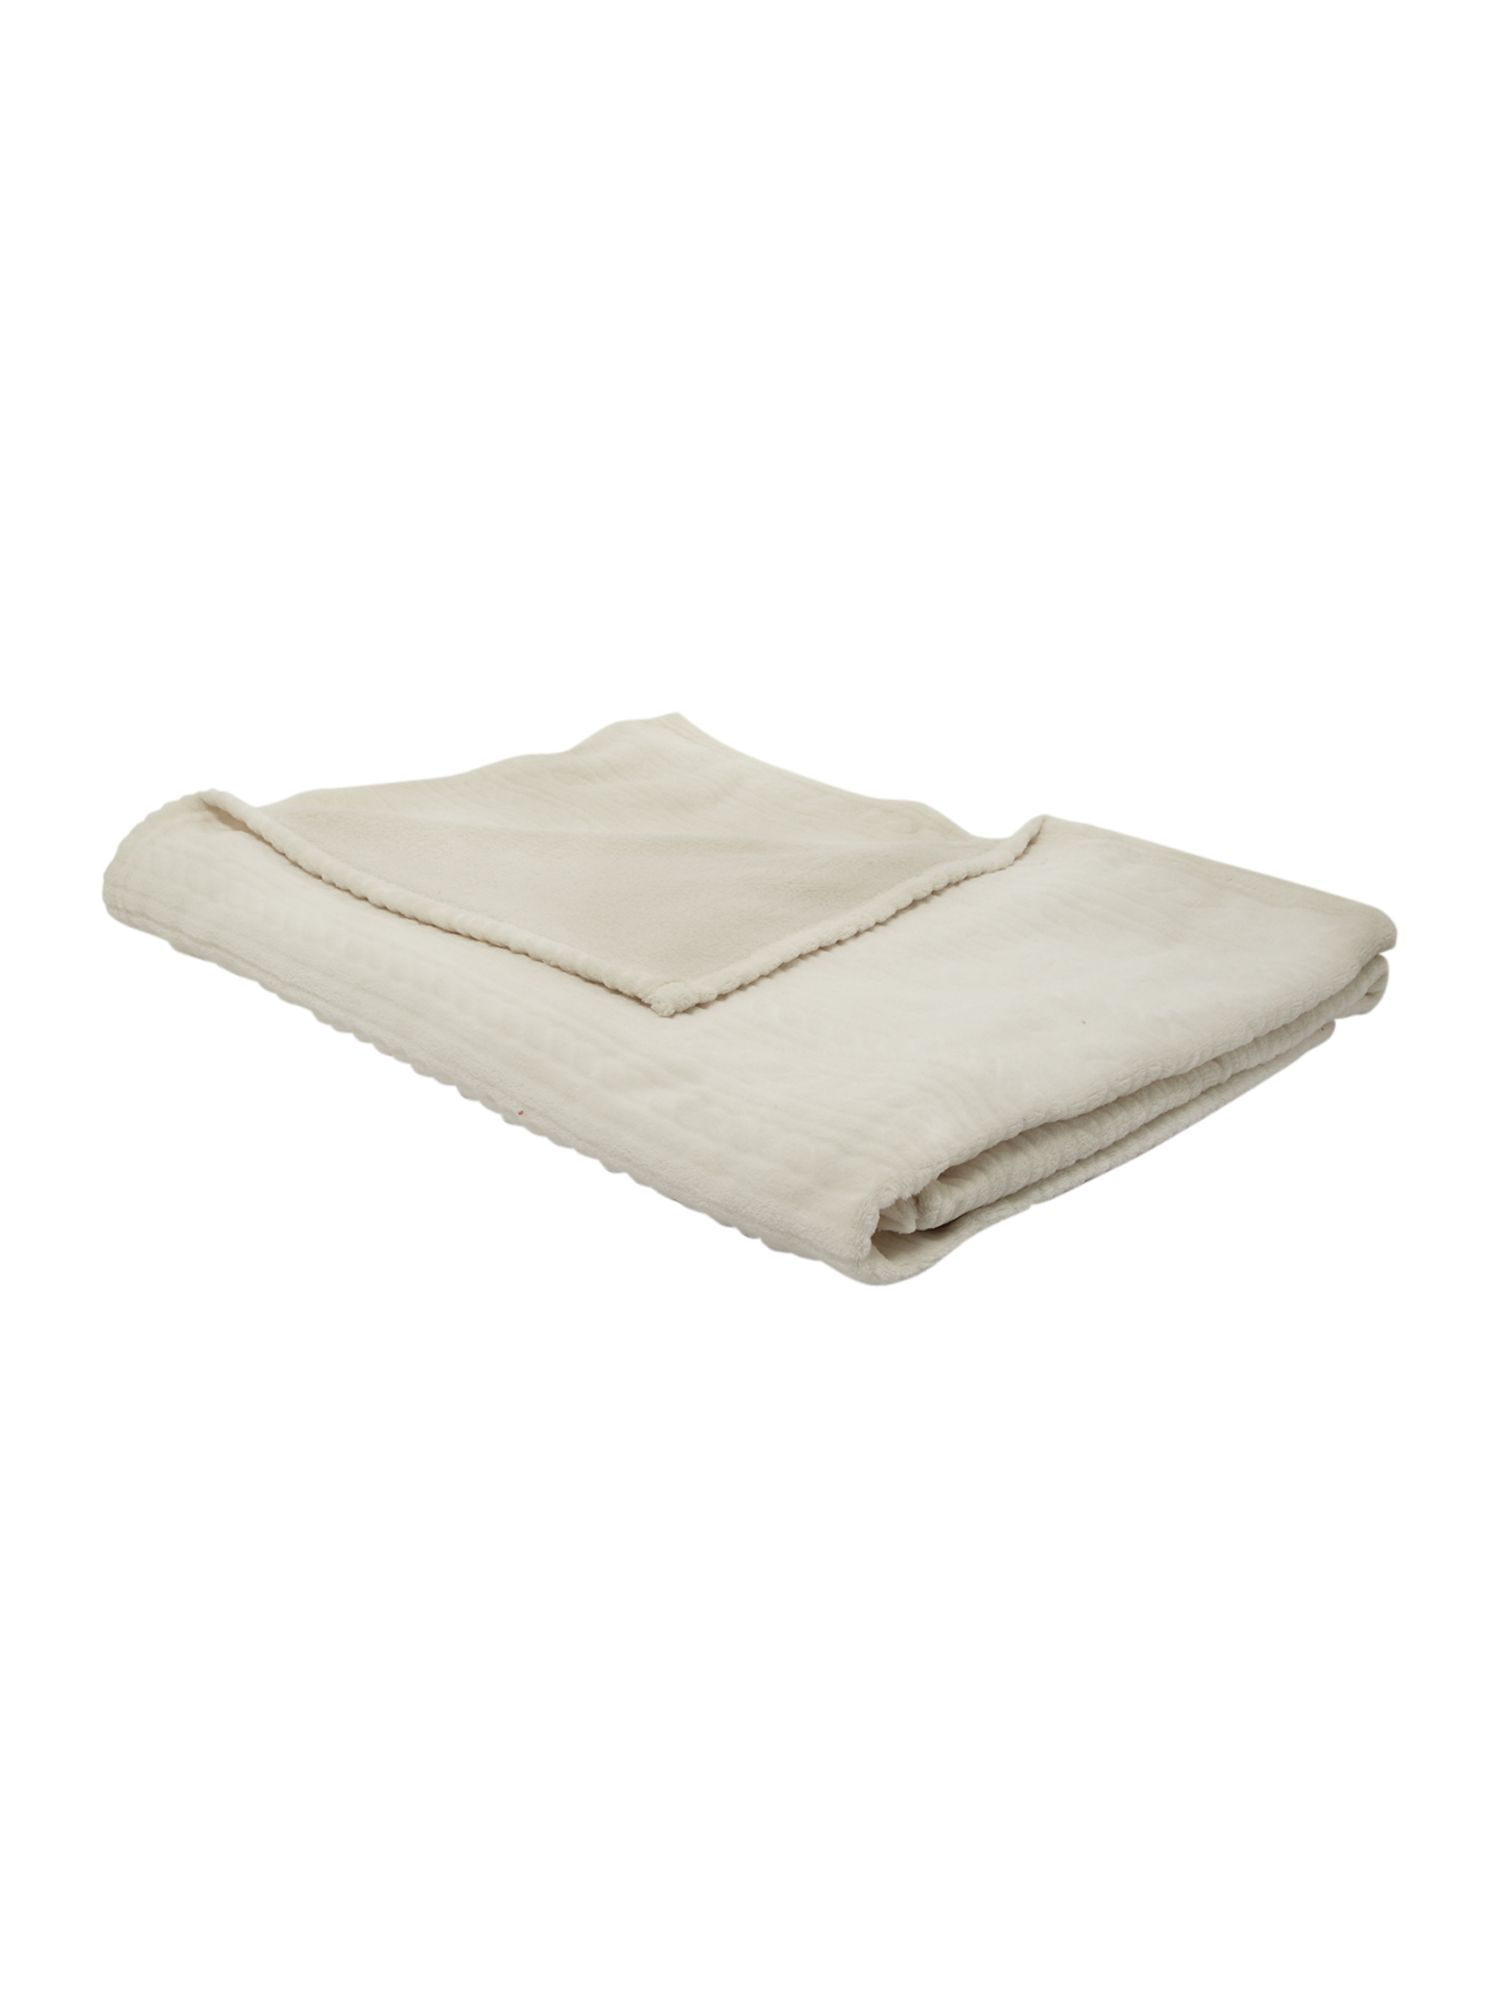 Textured fleece throw in cream